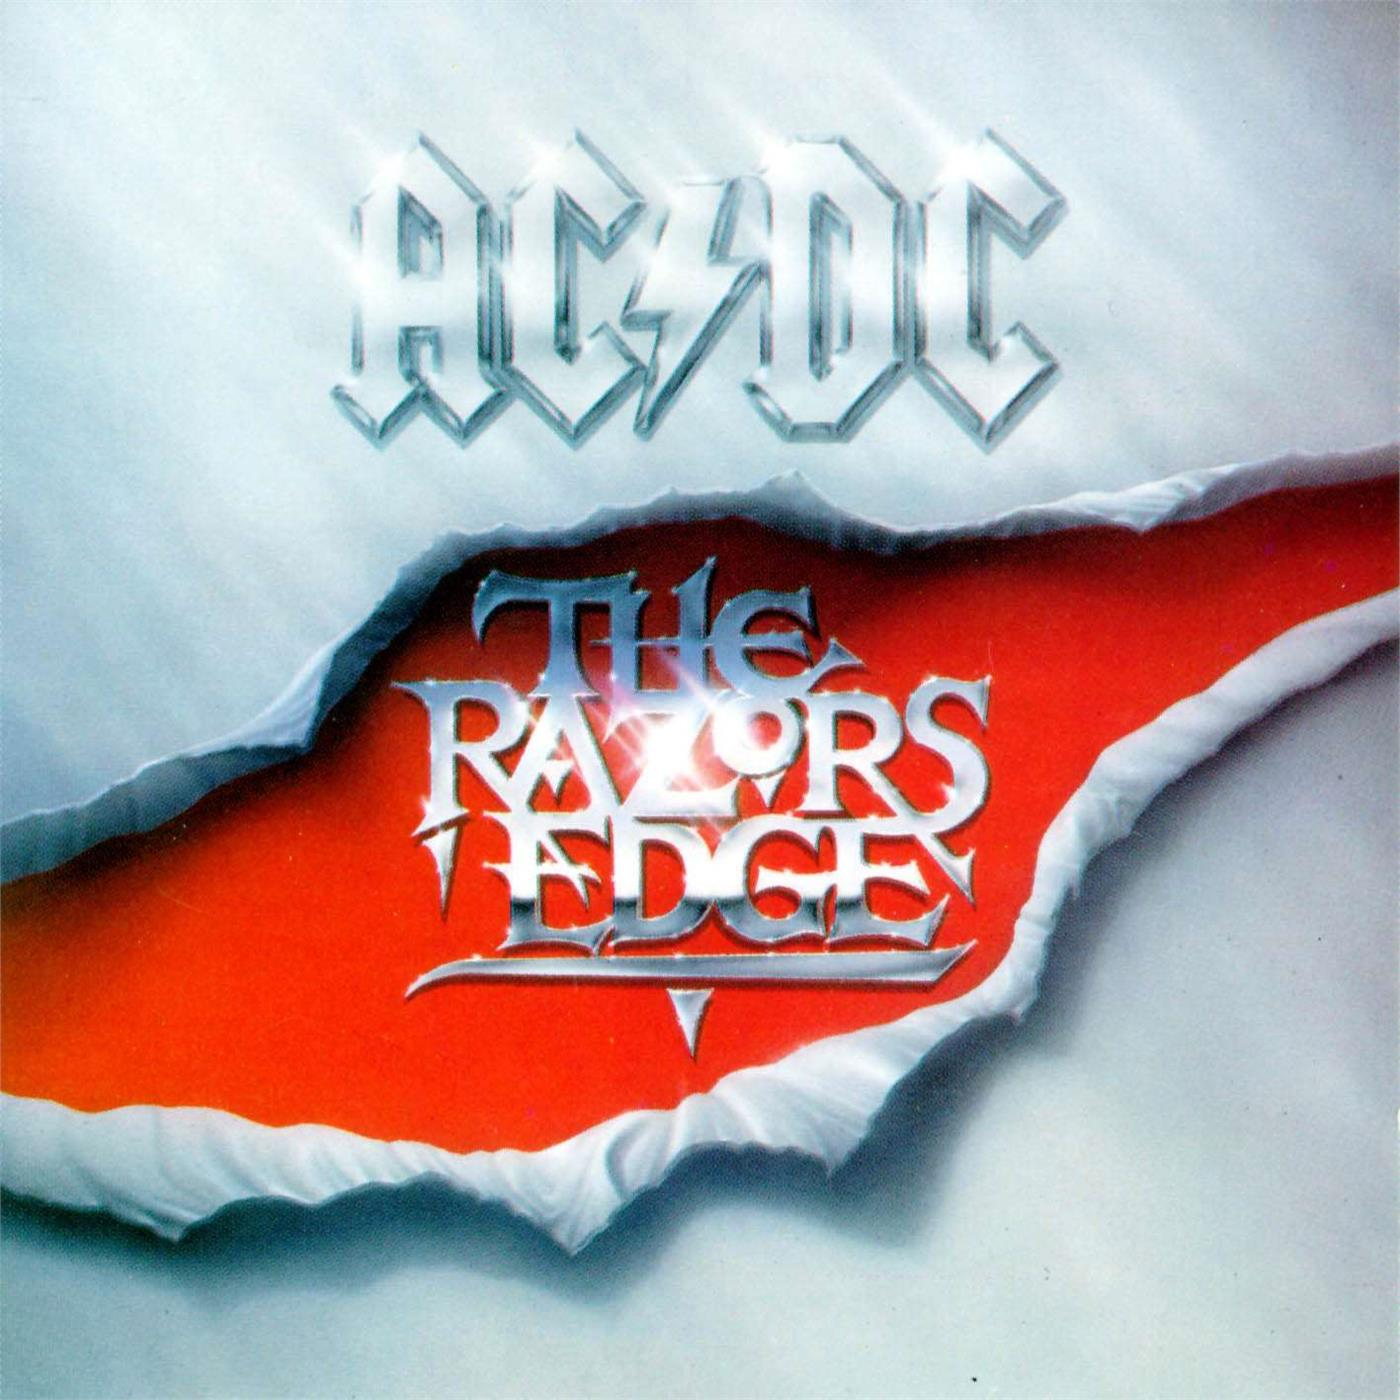 SME 5107711 Sony  AC/DC The Razor's Edge (LP)